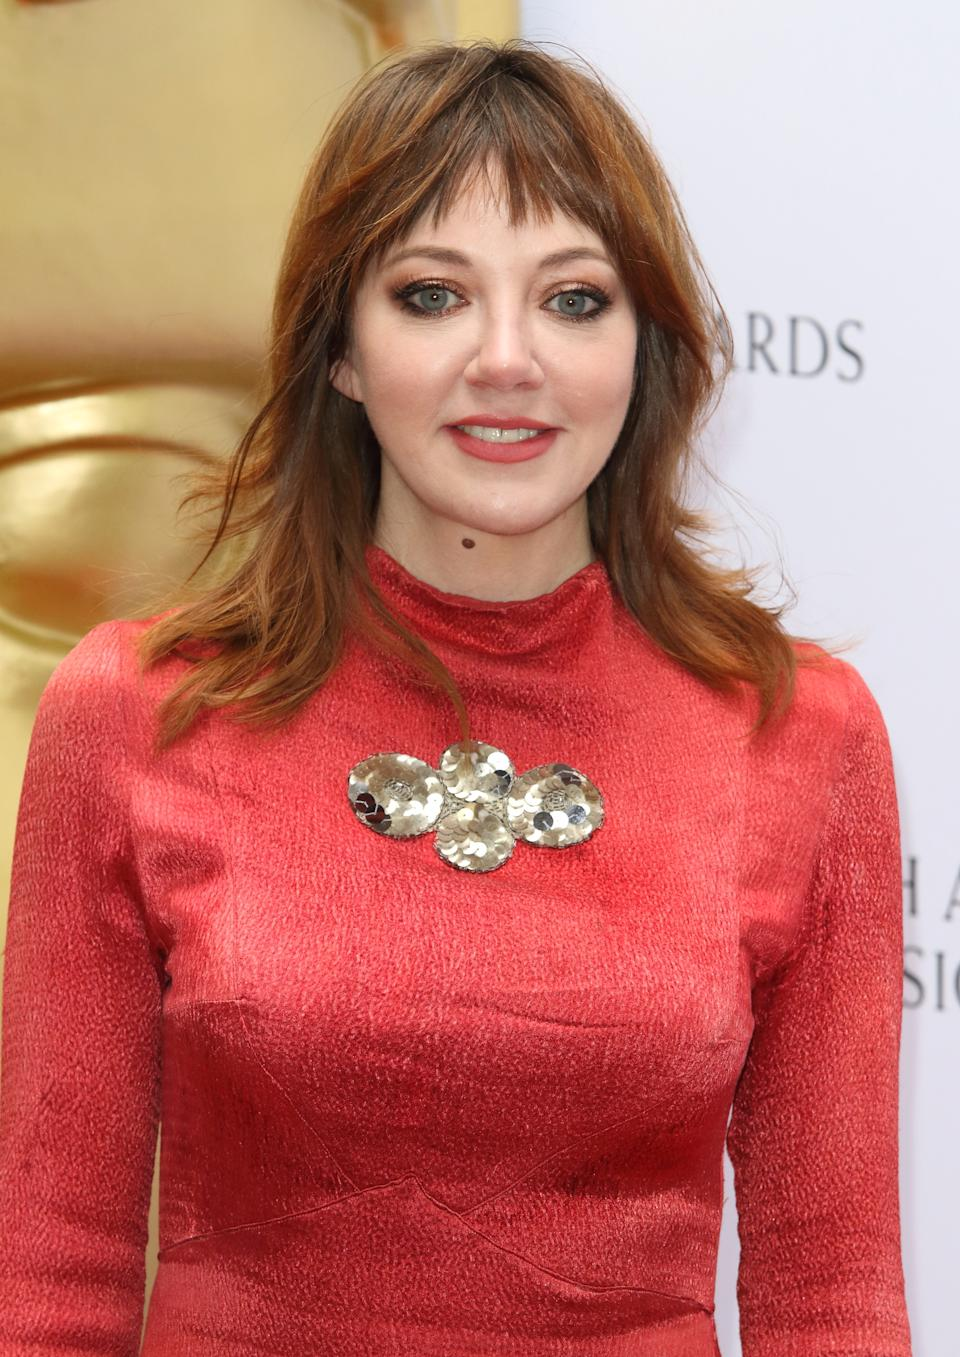 LONDON, UNITED KINGDOM - 2019/04/28: Diane Morgan at the British Academy (BAFTA) Television Craft Awards at The Brewery, Chiswell Street. (Photo by Keith Mayhew/SOPA Images/LightRocket via Getty Images)